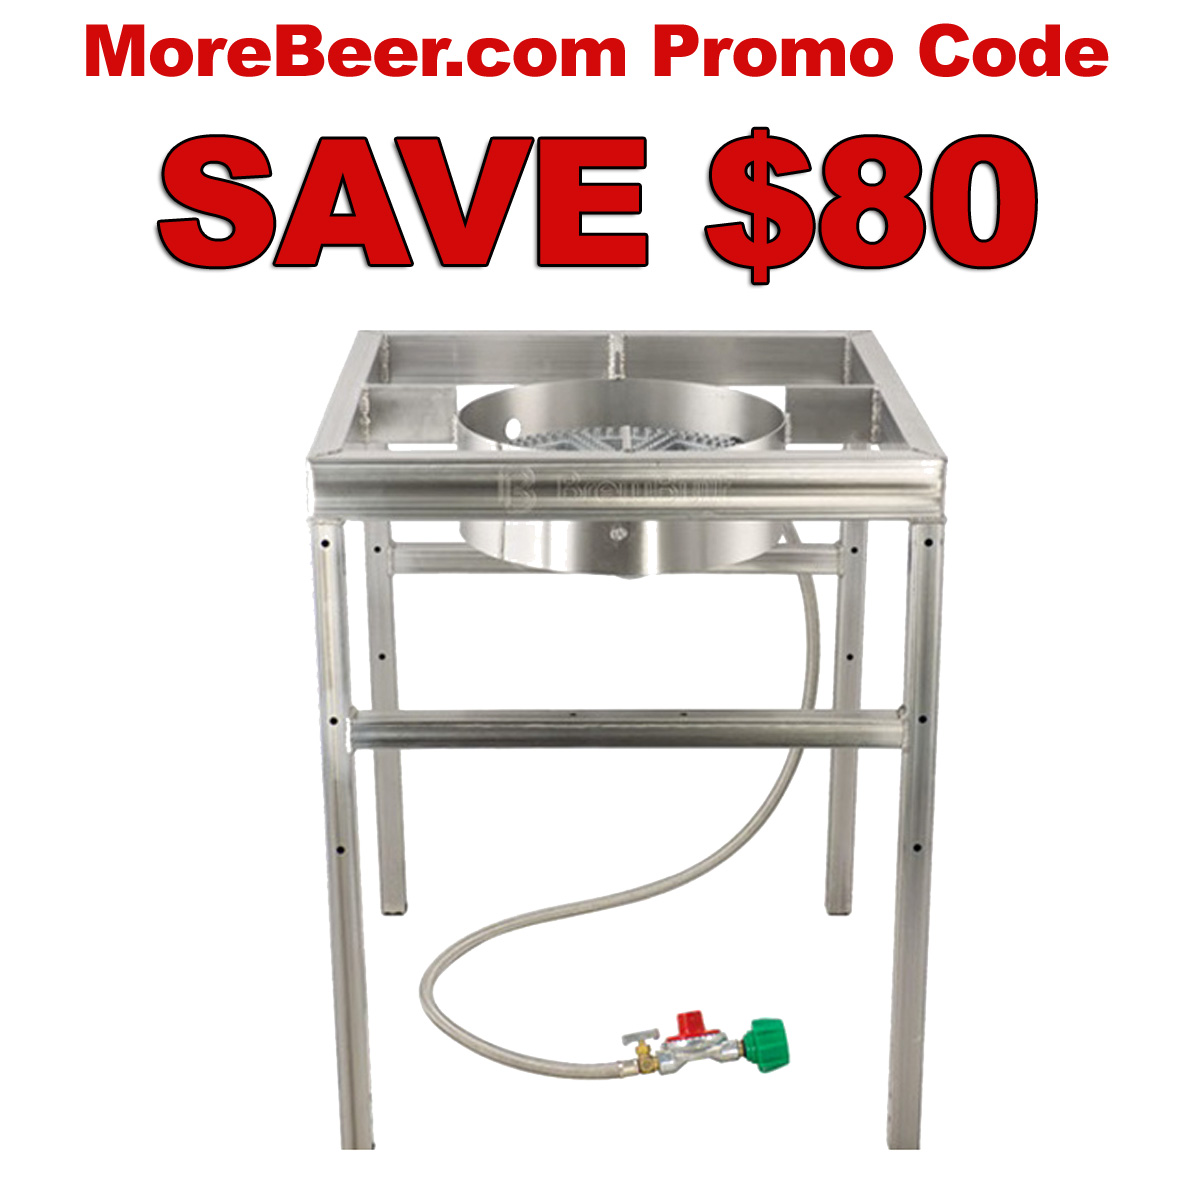 MoreBeer Save $80 On A More Beer After Burner Brewing Burner and Stand With This MoreBeer.com Promo Code Coupon Code